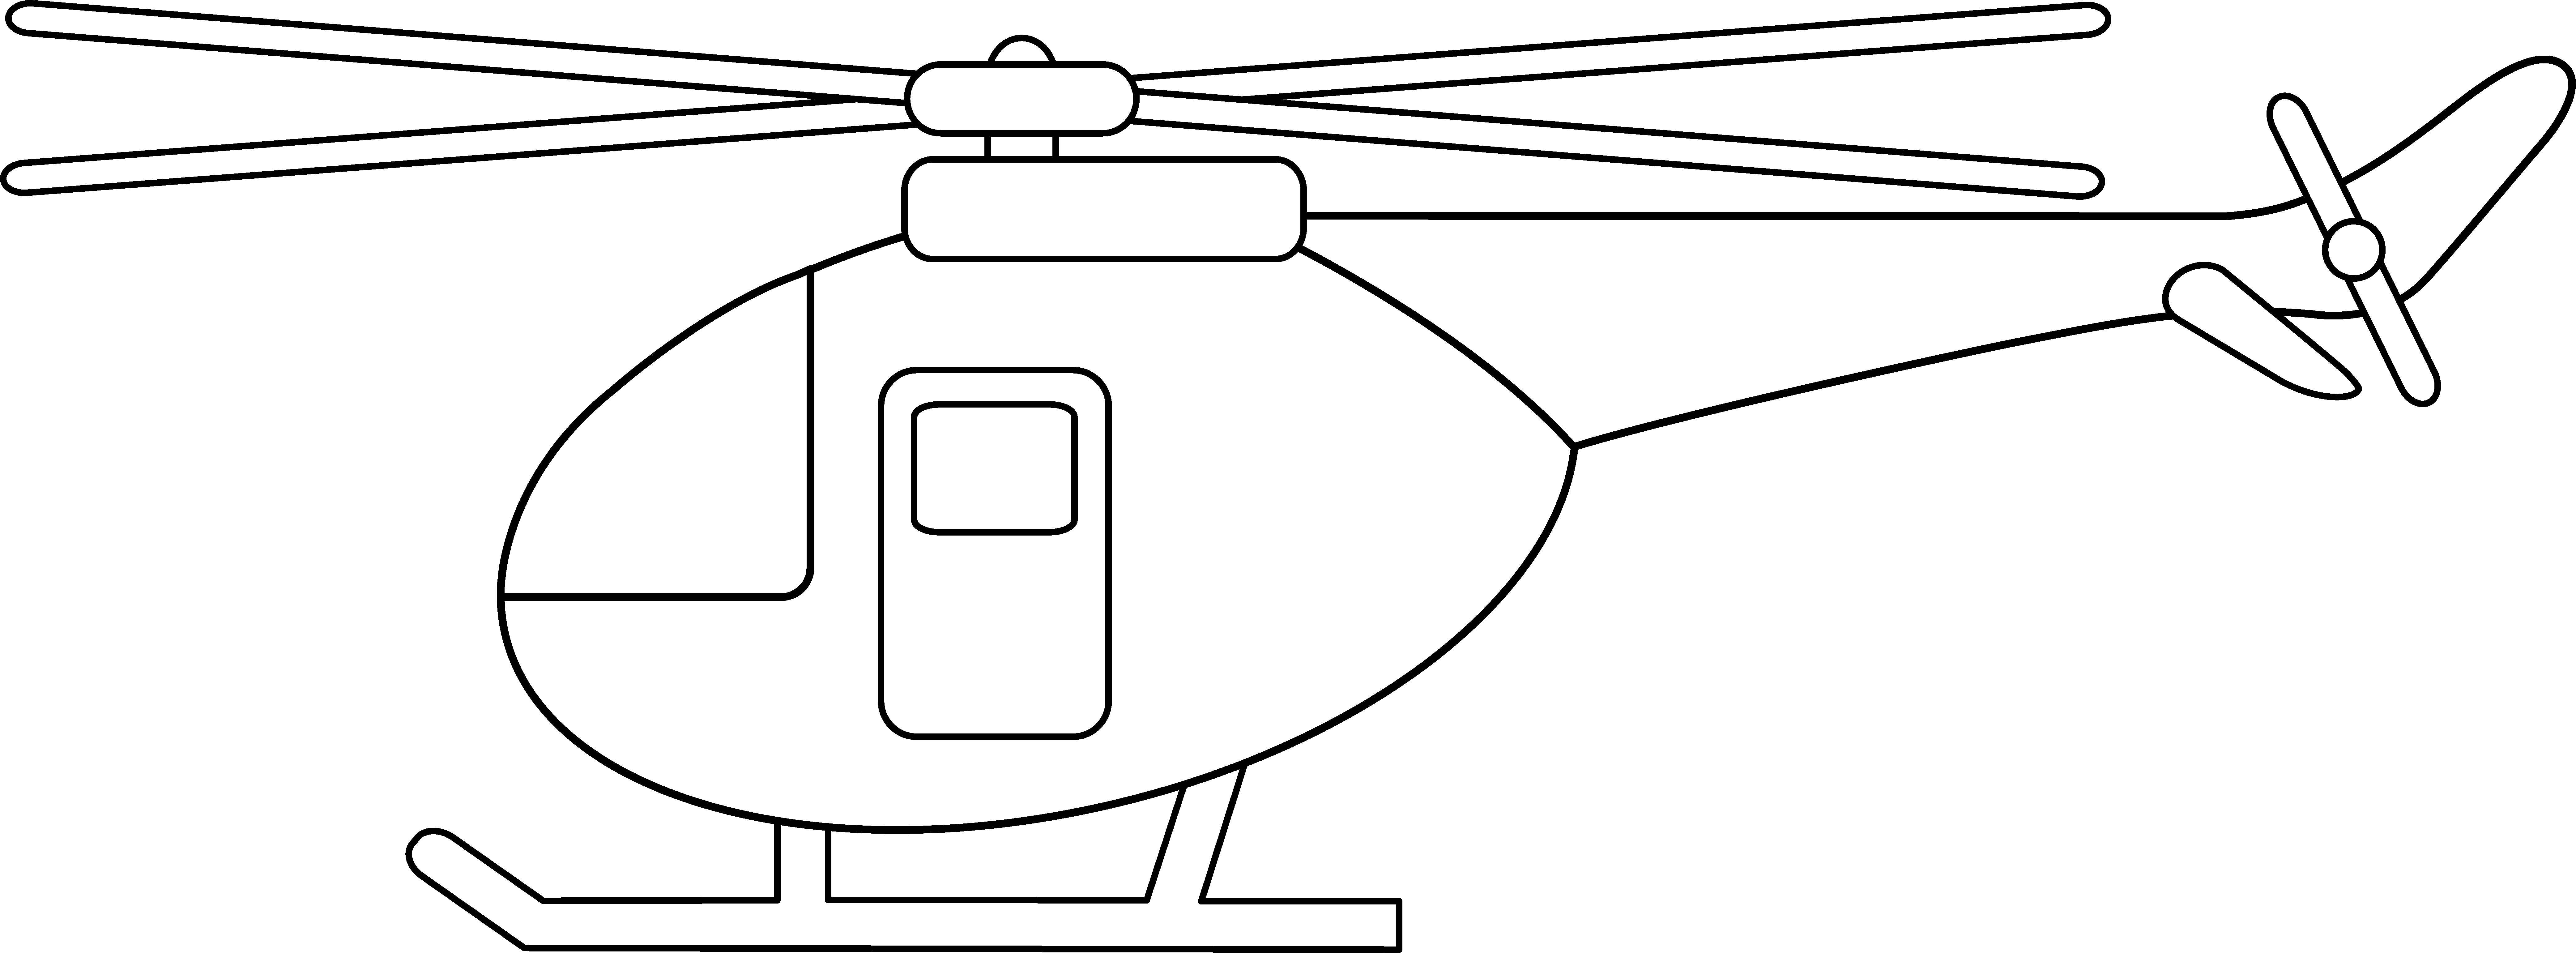 Hc clip rotor. Colorable helicopter design free